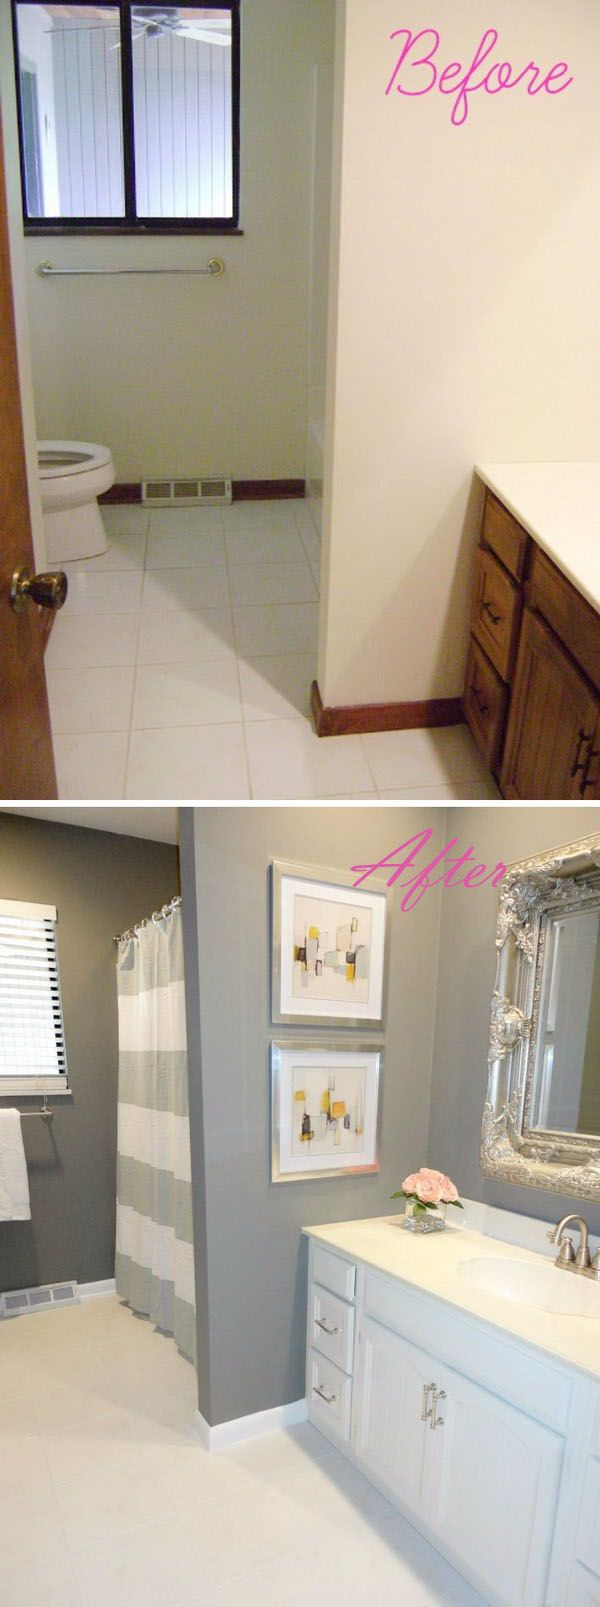 Best Bathroom Makeovers Ideas On Pinterest Small Bathroom - 20 elegant bathroom makeover ideas